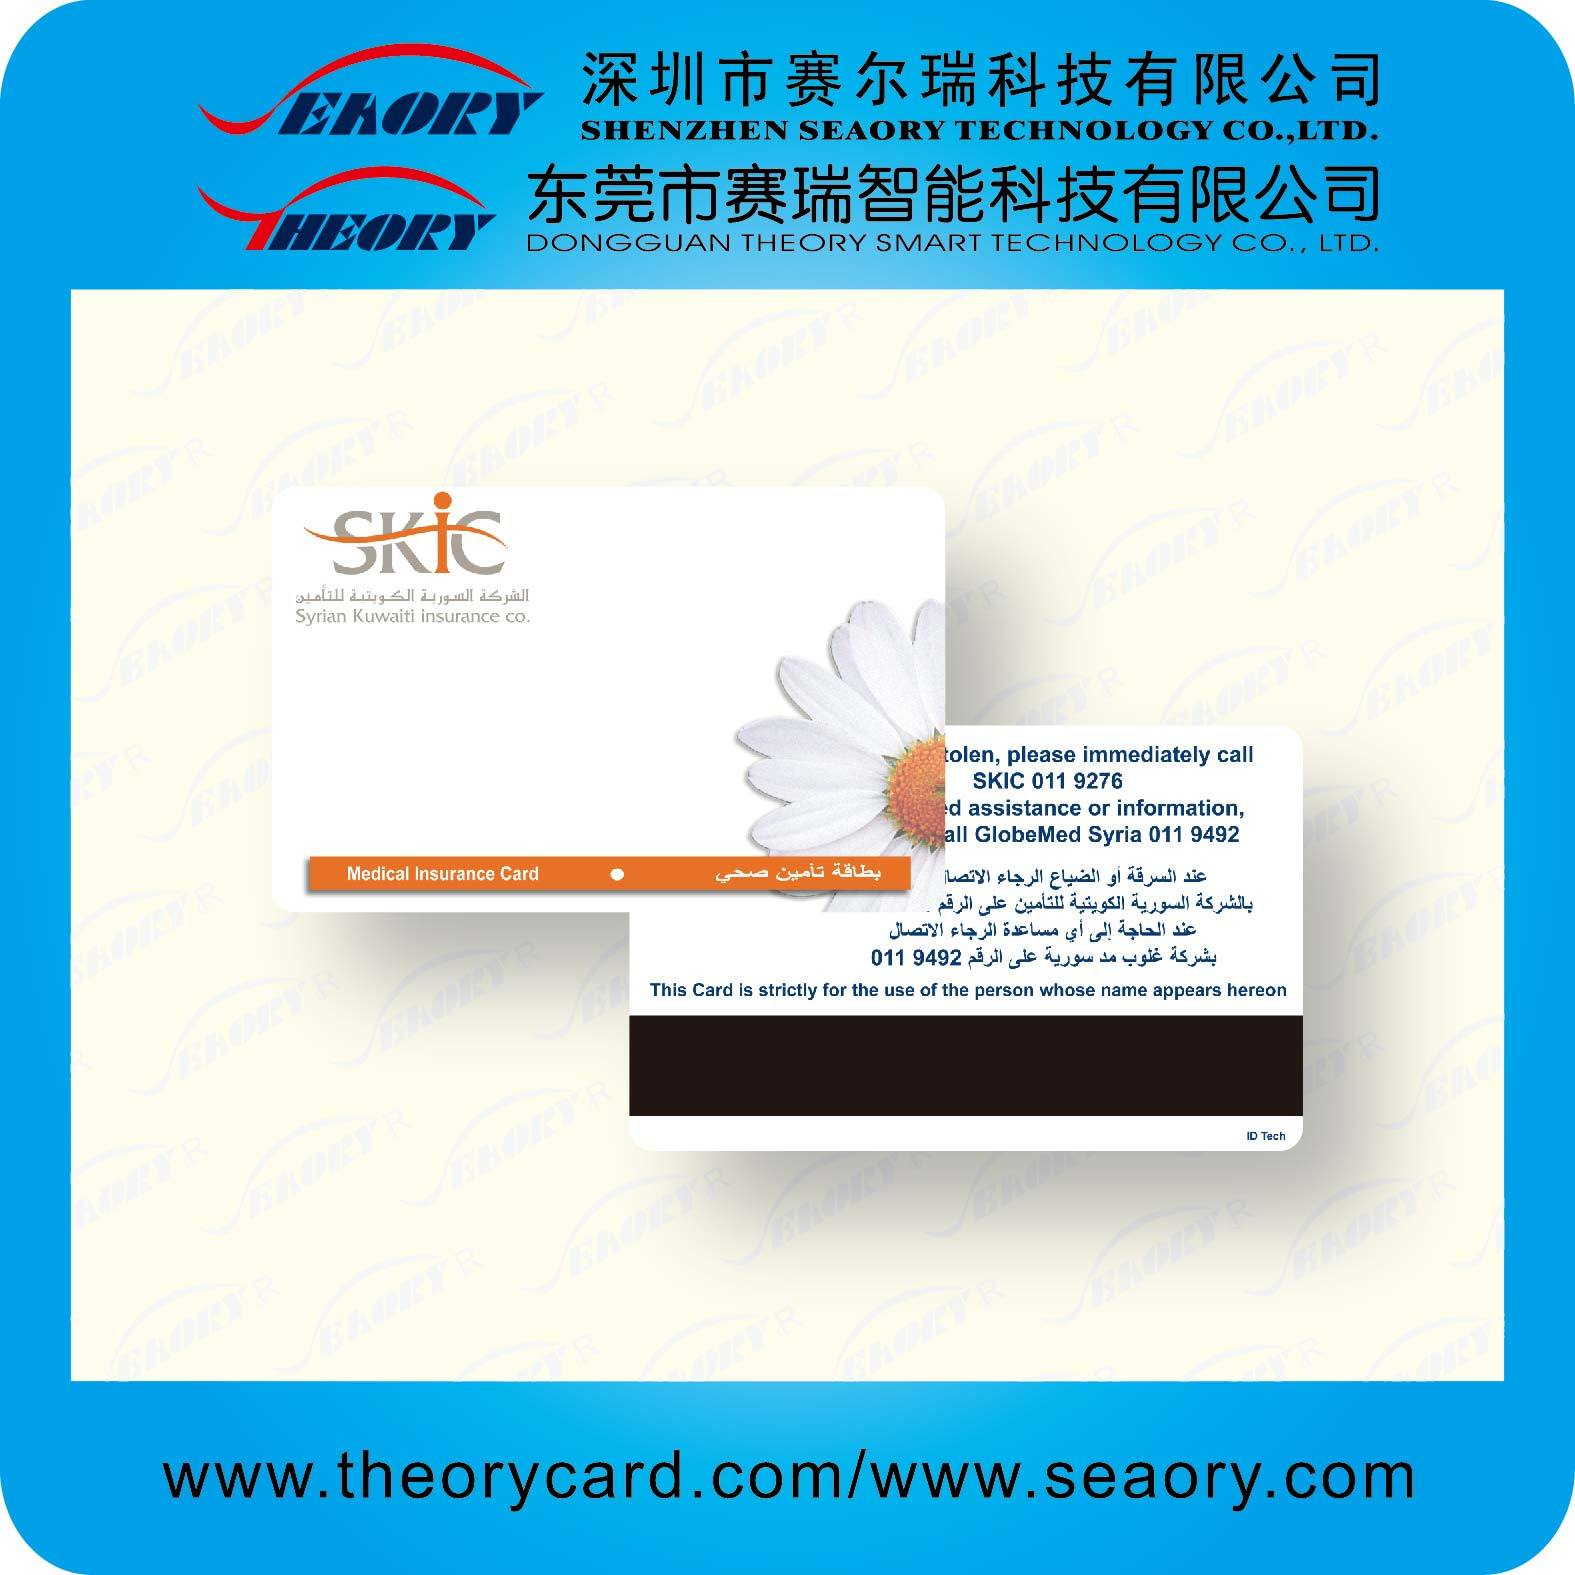 difference between hico and loco cards